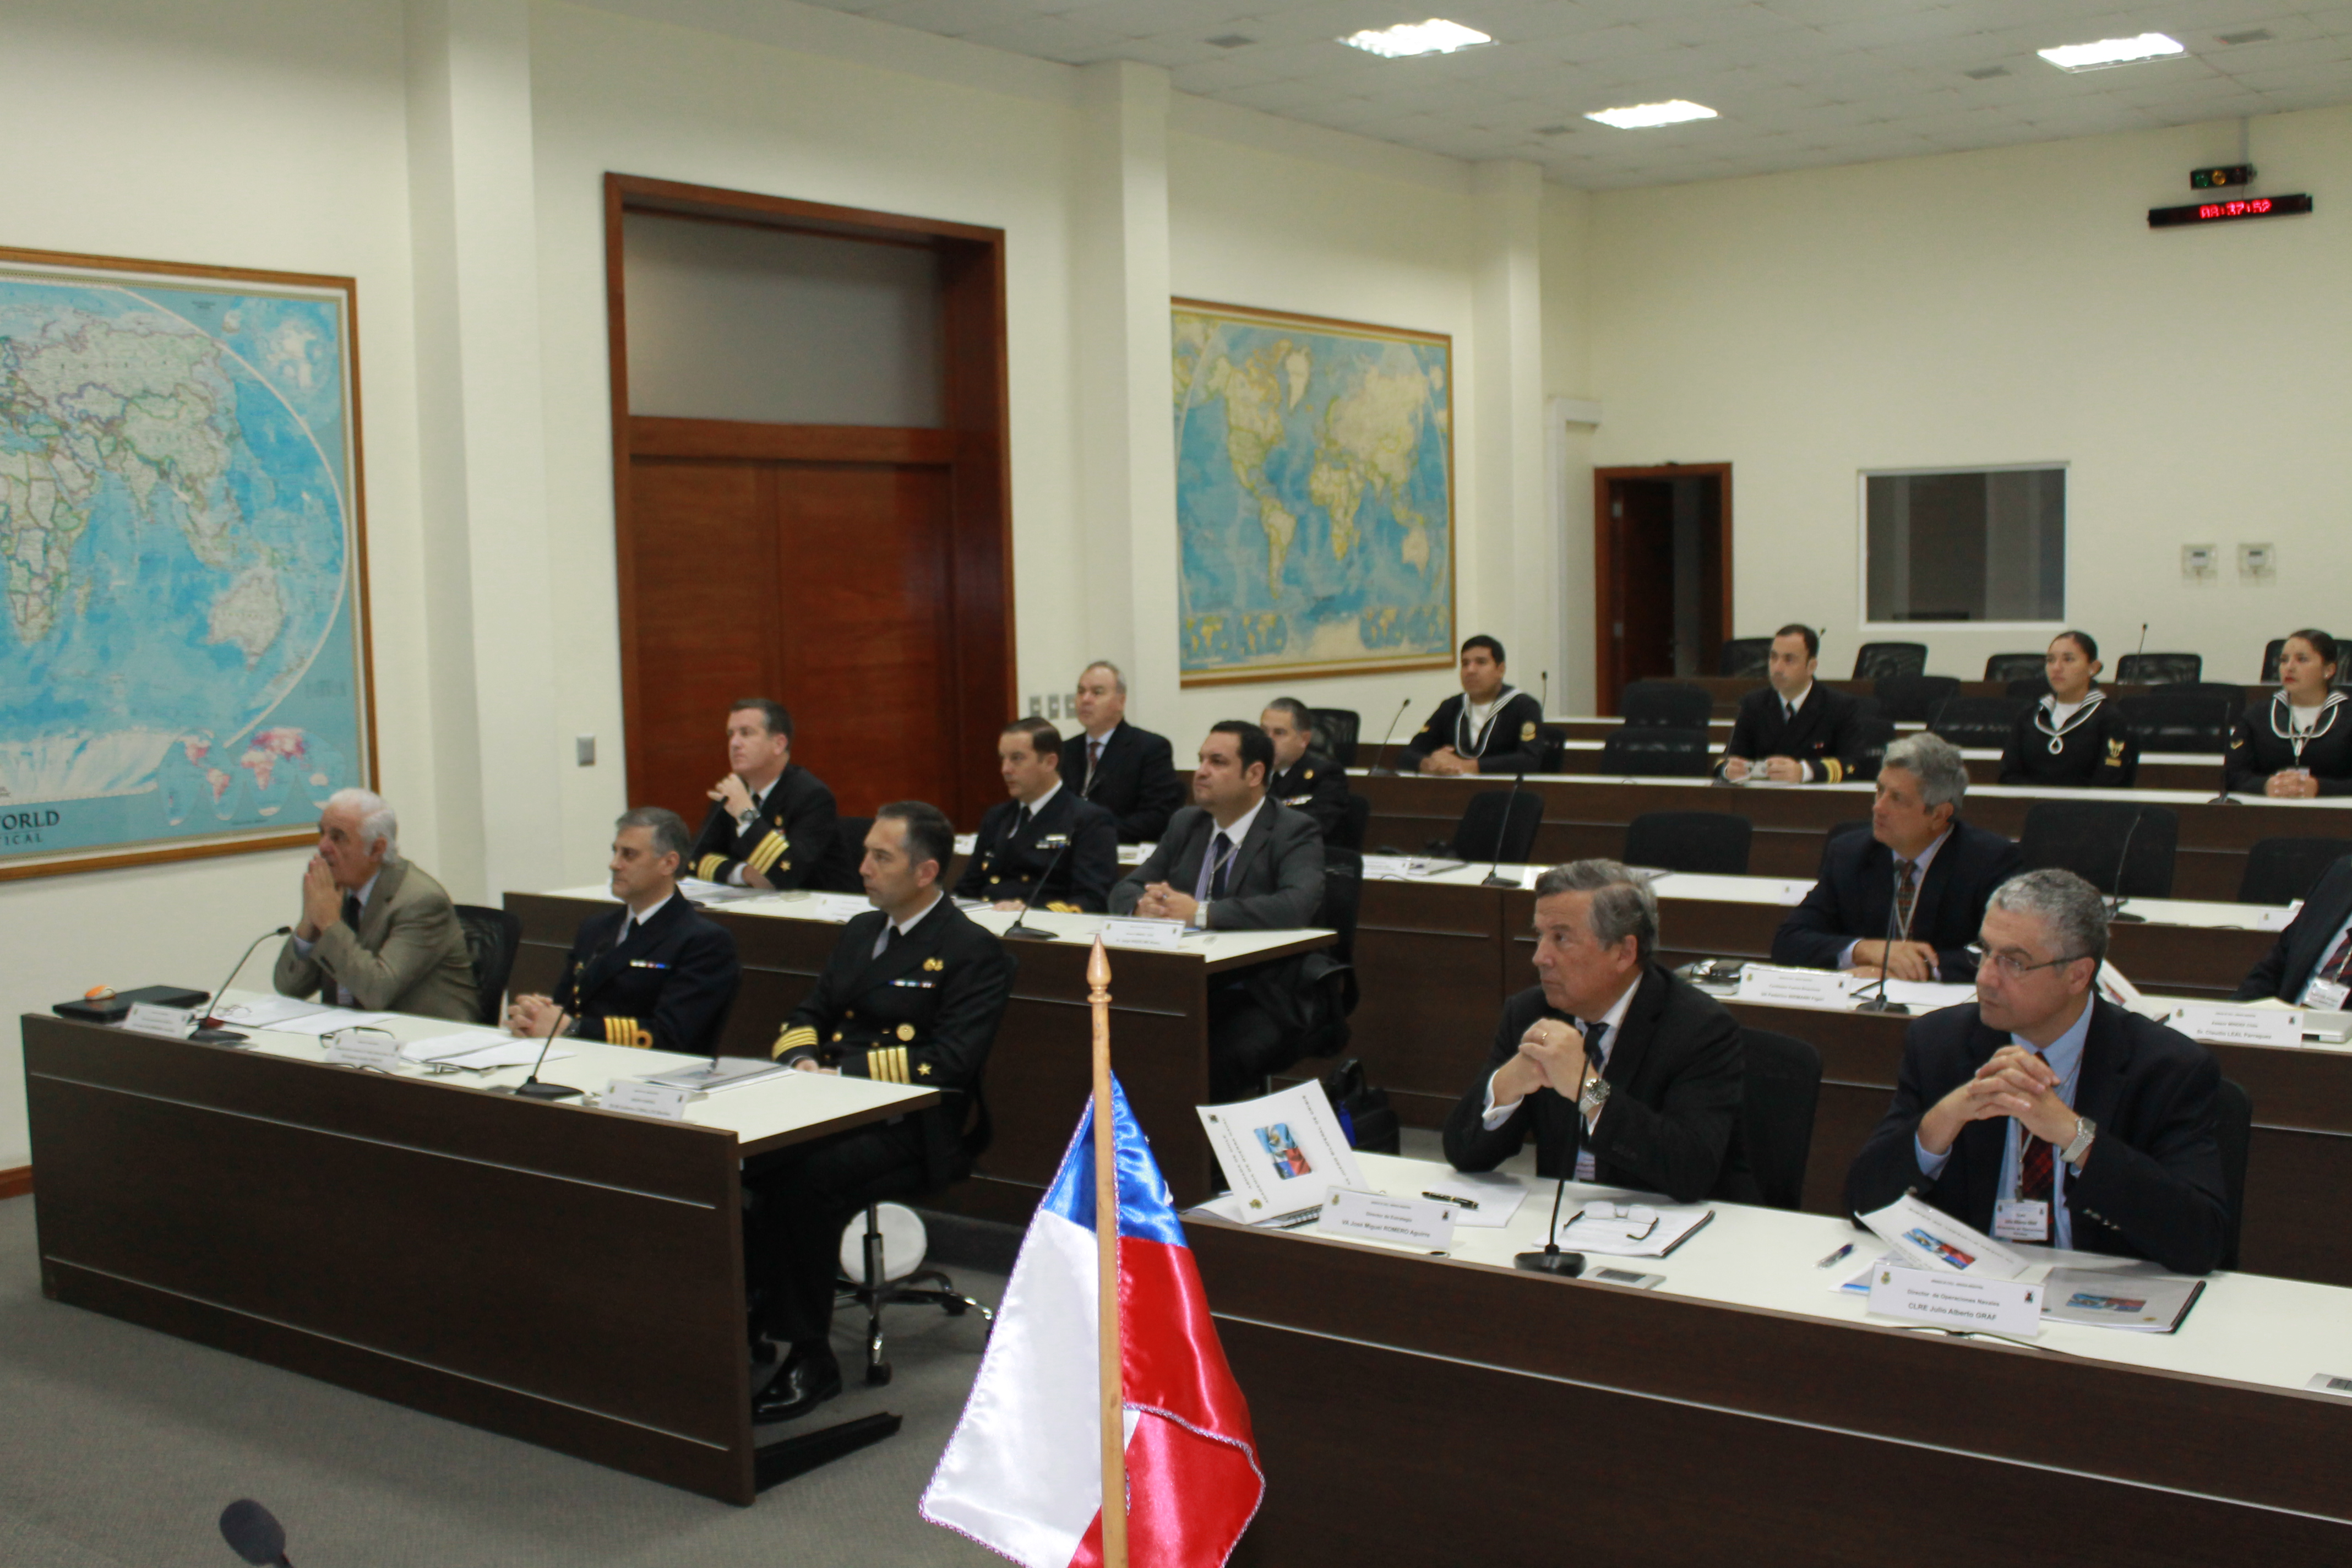 Navies of Chile and Argentina Combat Crime in the High Seas in Tabletop Exercise